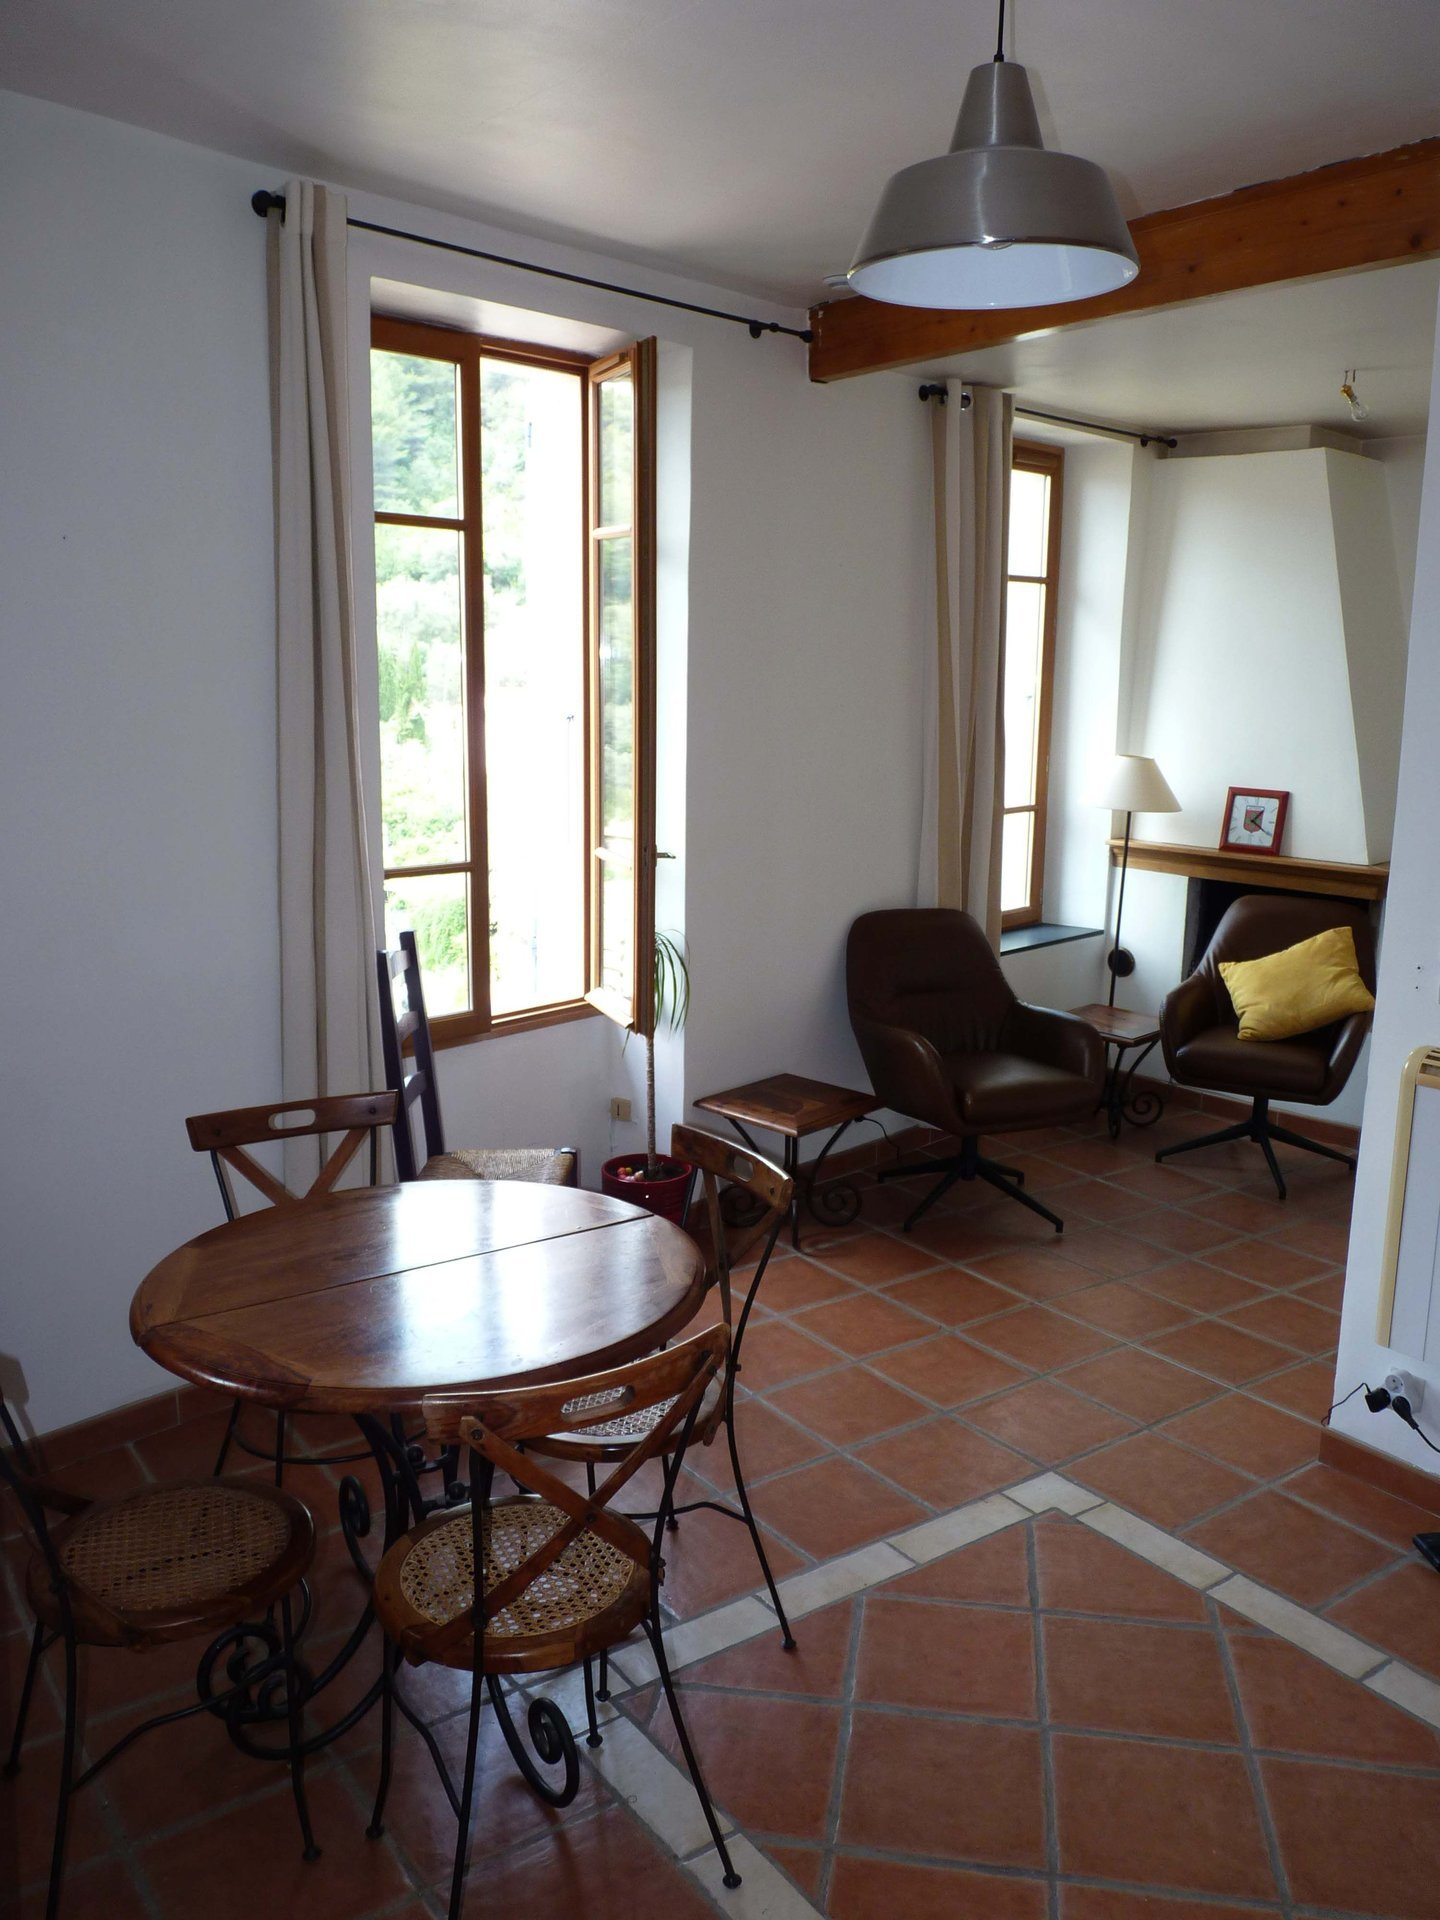 NICE - COUNTRYSIDE - HOUSE VILLAGE 2/3BEDROOM